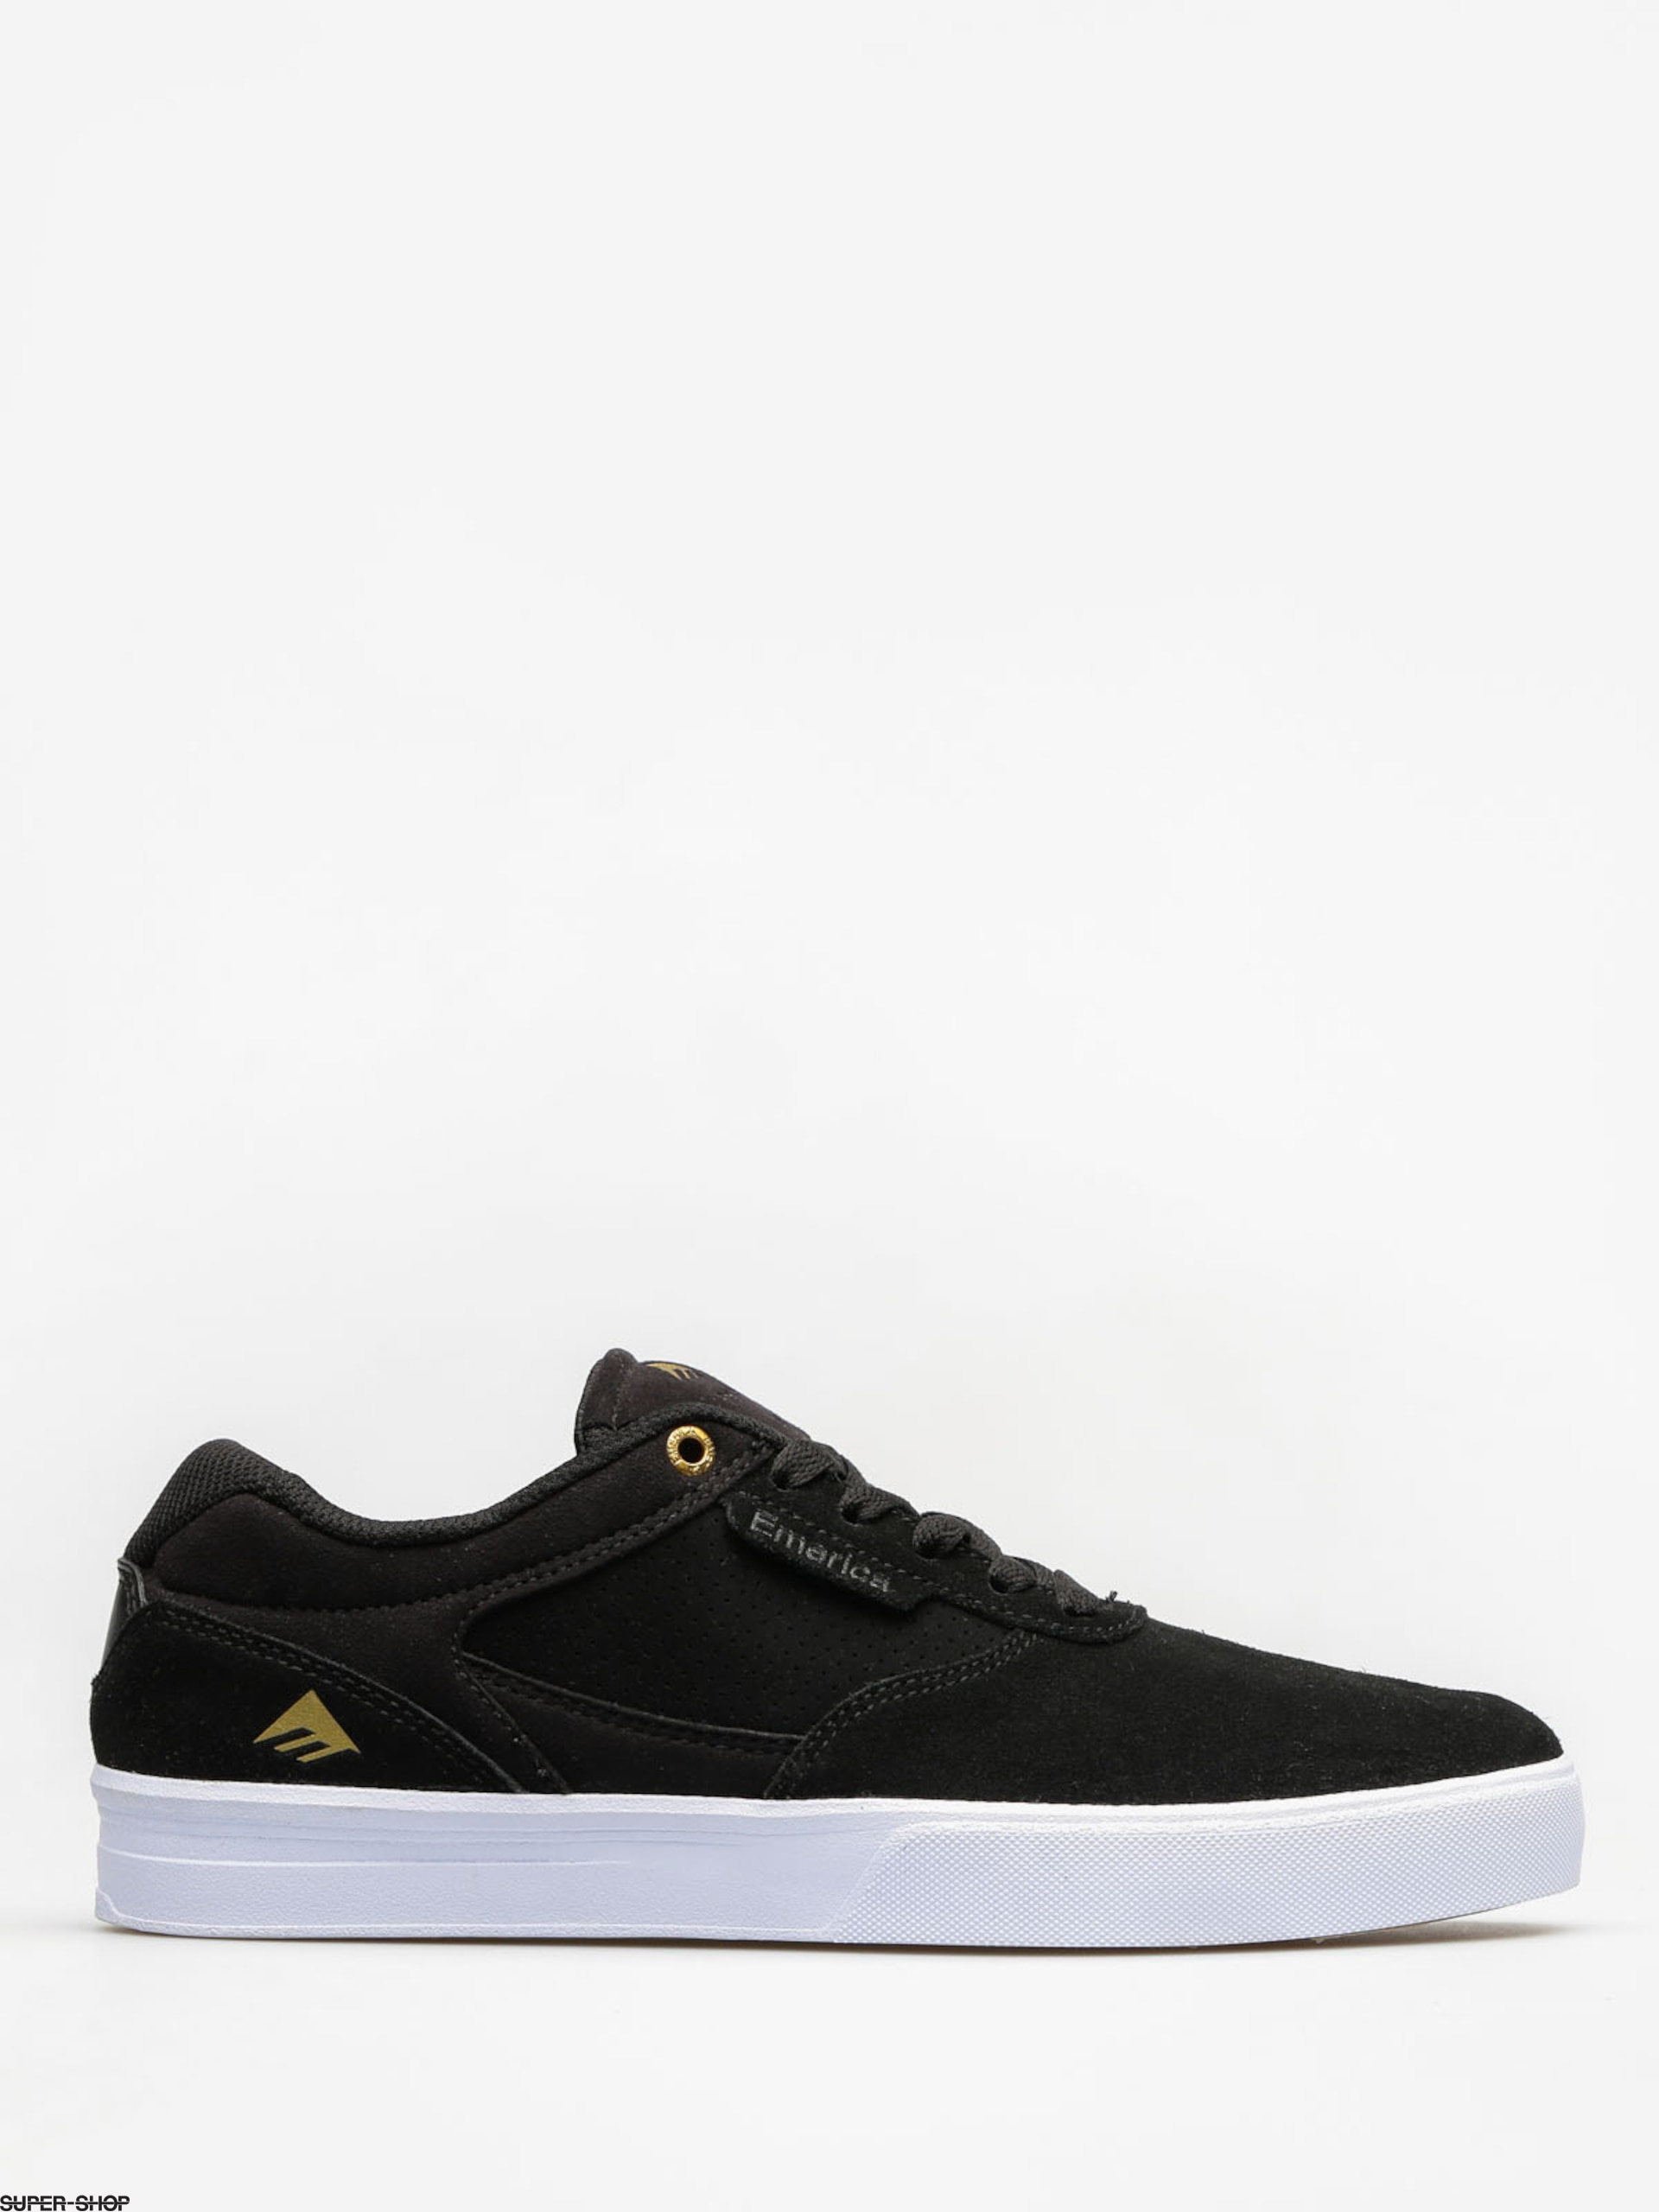 Emerica Shoes Empire G6 (black/white)